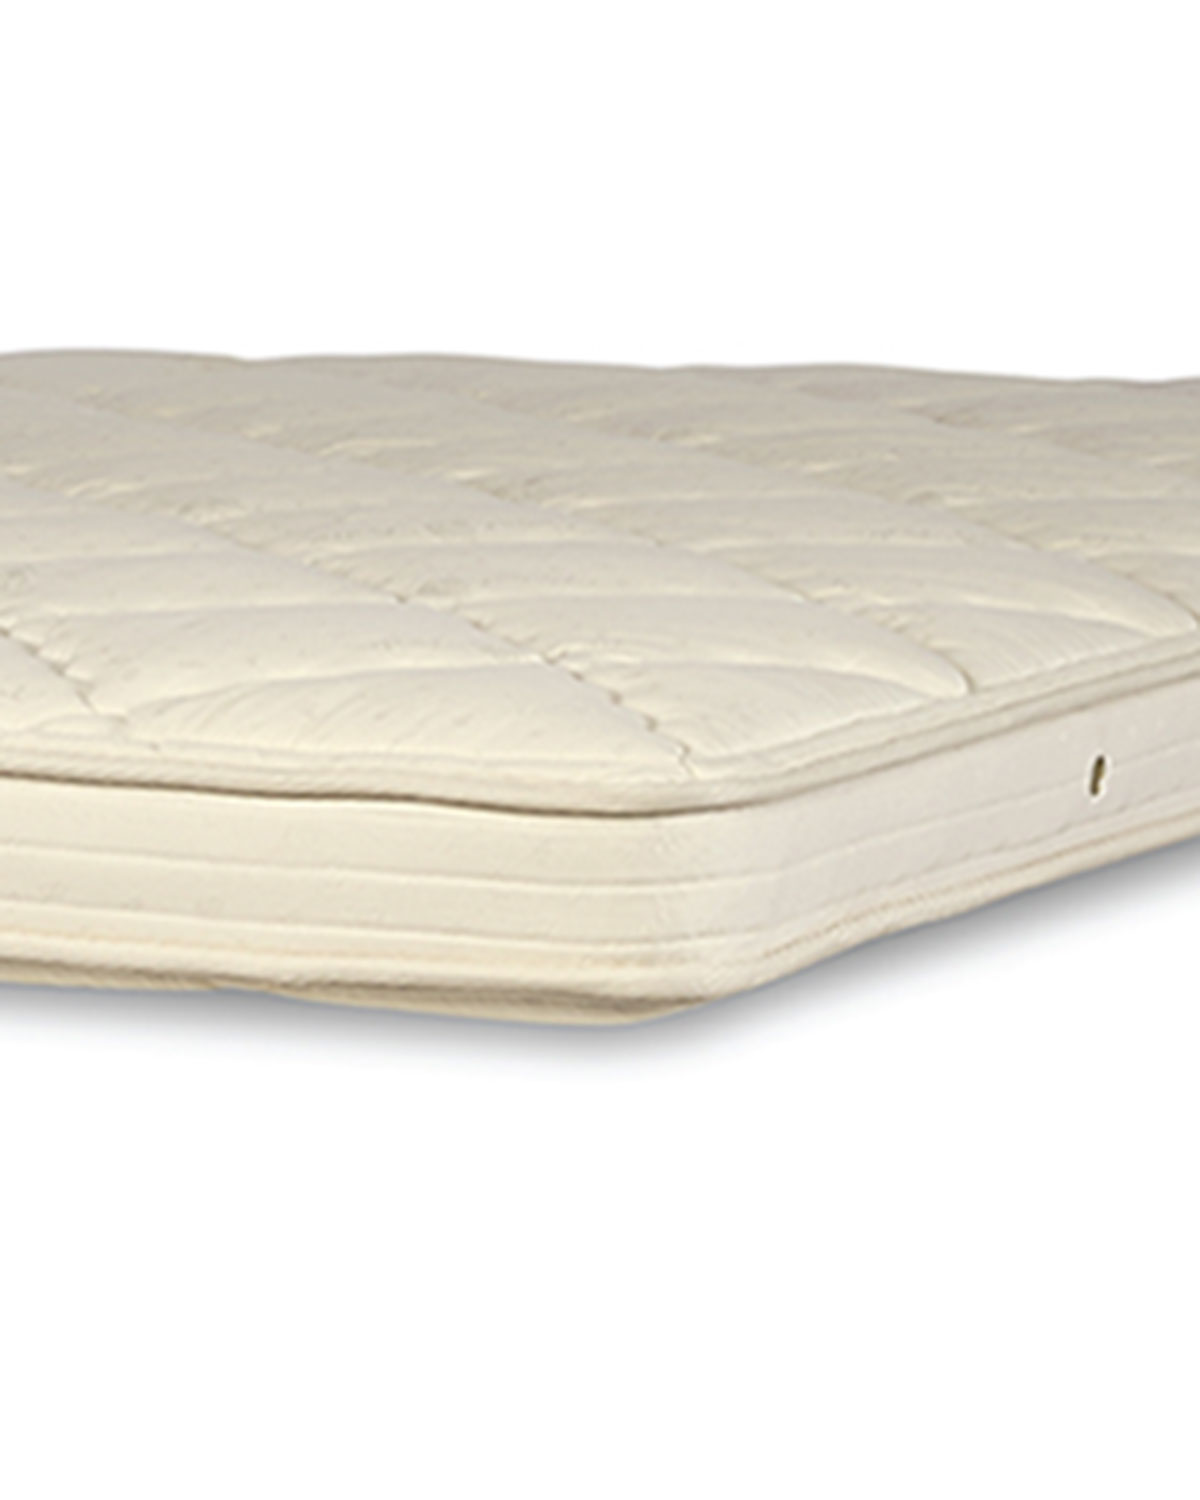 Royal-Pedic Dream Spring Deluxe Pillow Top Pad - King